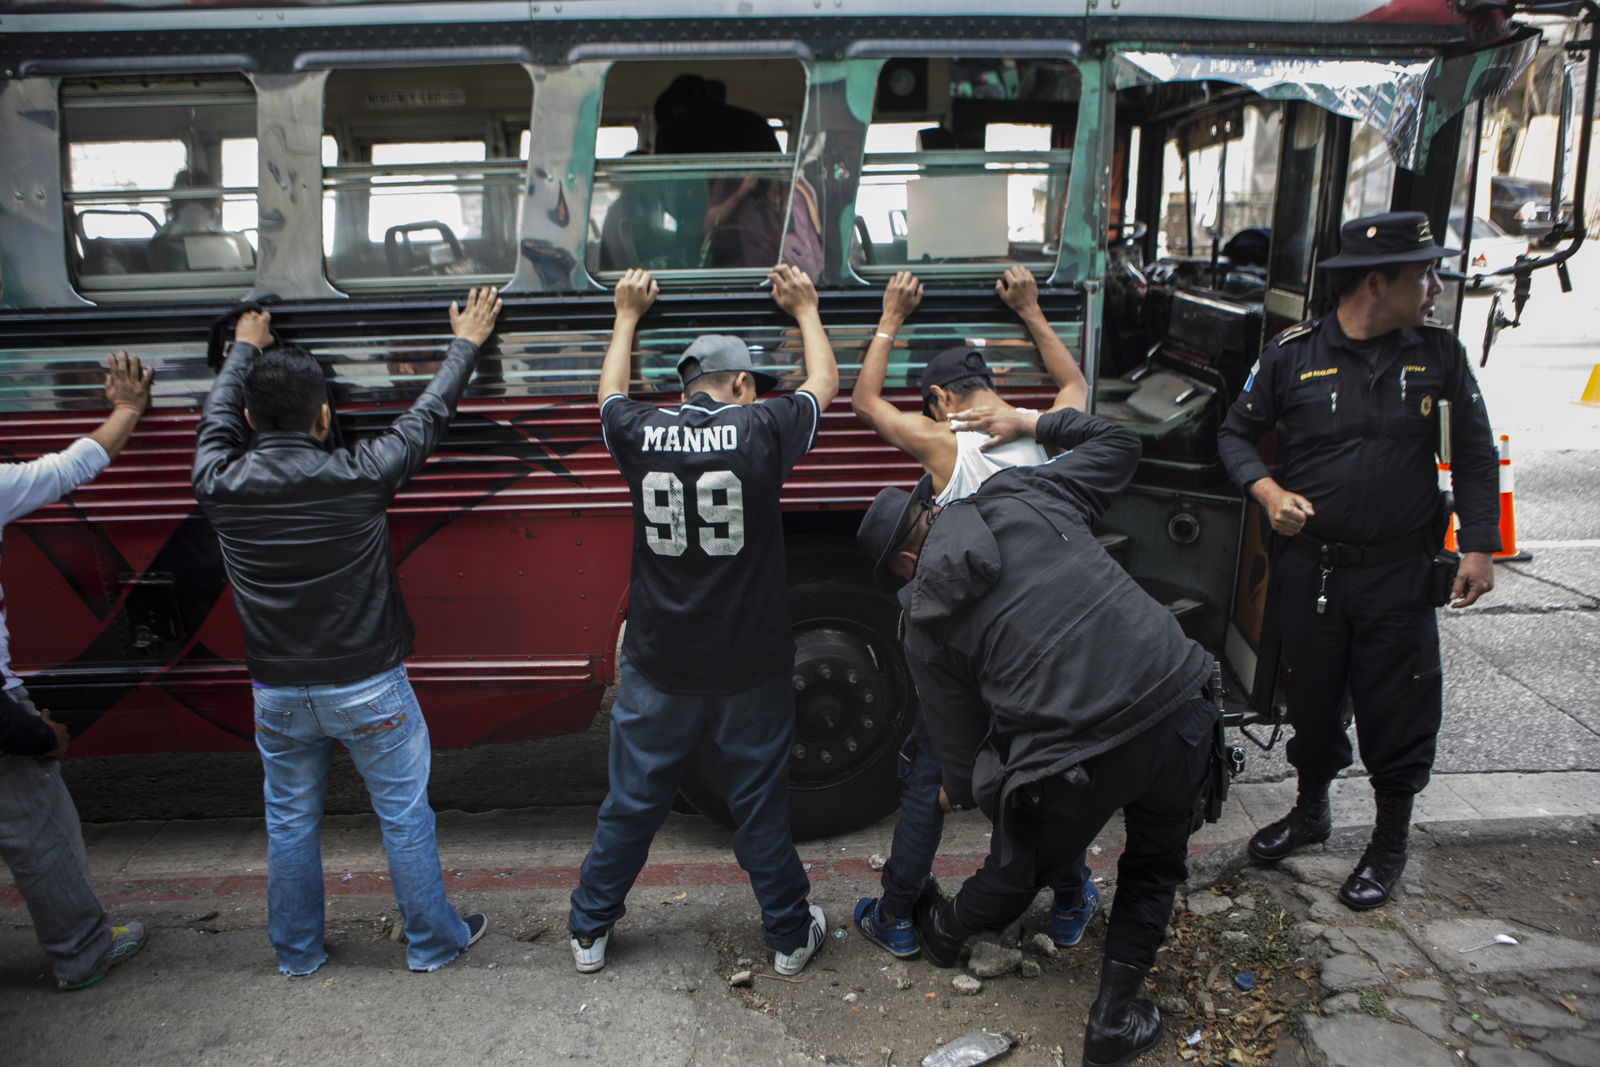 Police search passengers after stopping a bus in the El Milagro area of the Mixco municipality on the outskirts of Guatemala City, Friday, Jan. 17, 2020.{ } (AP Photo/Oliver de Ros)